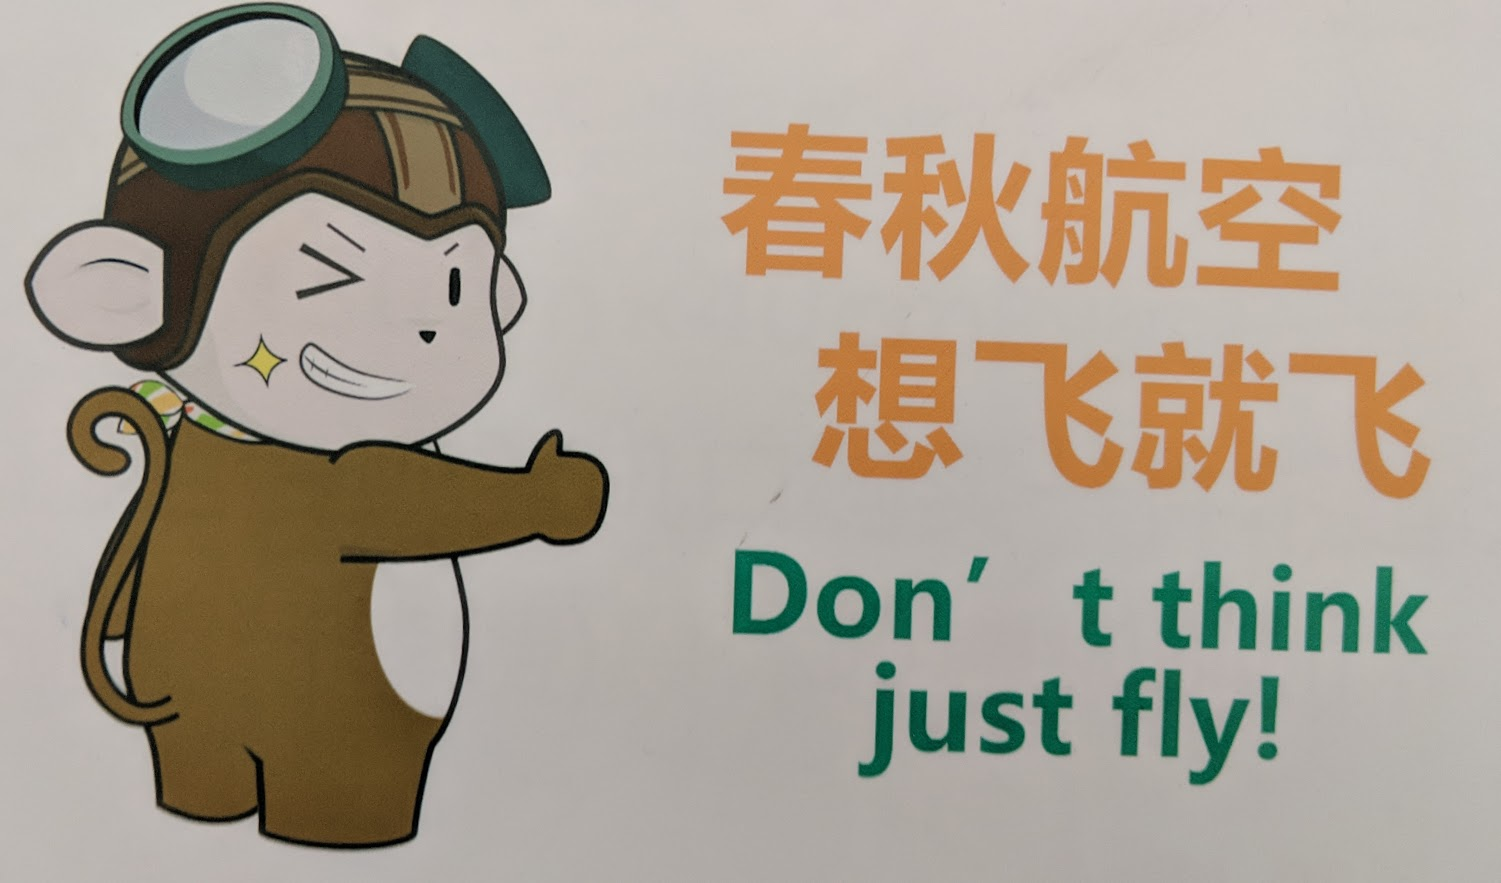 Don't think, just fly.